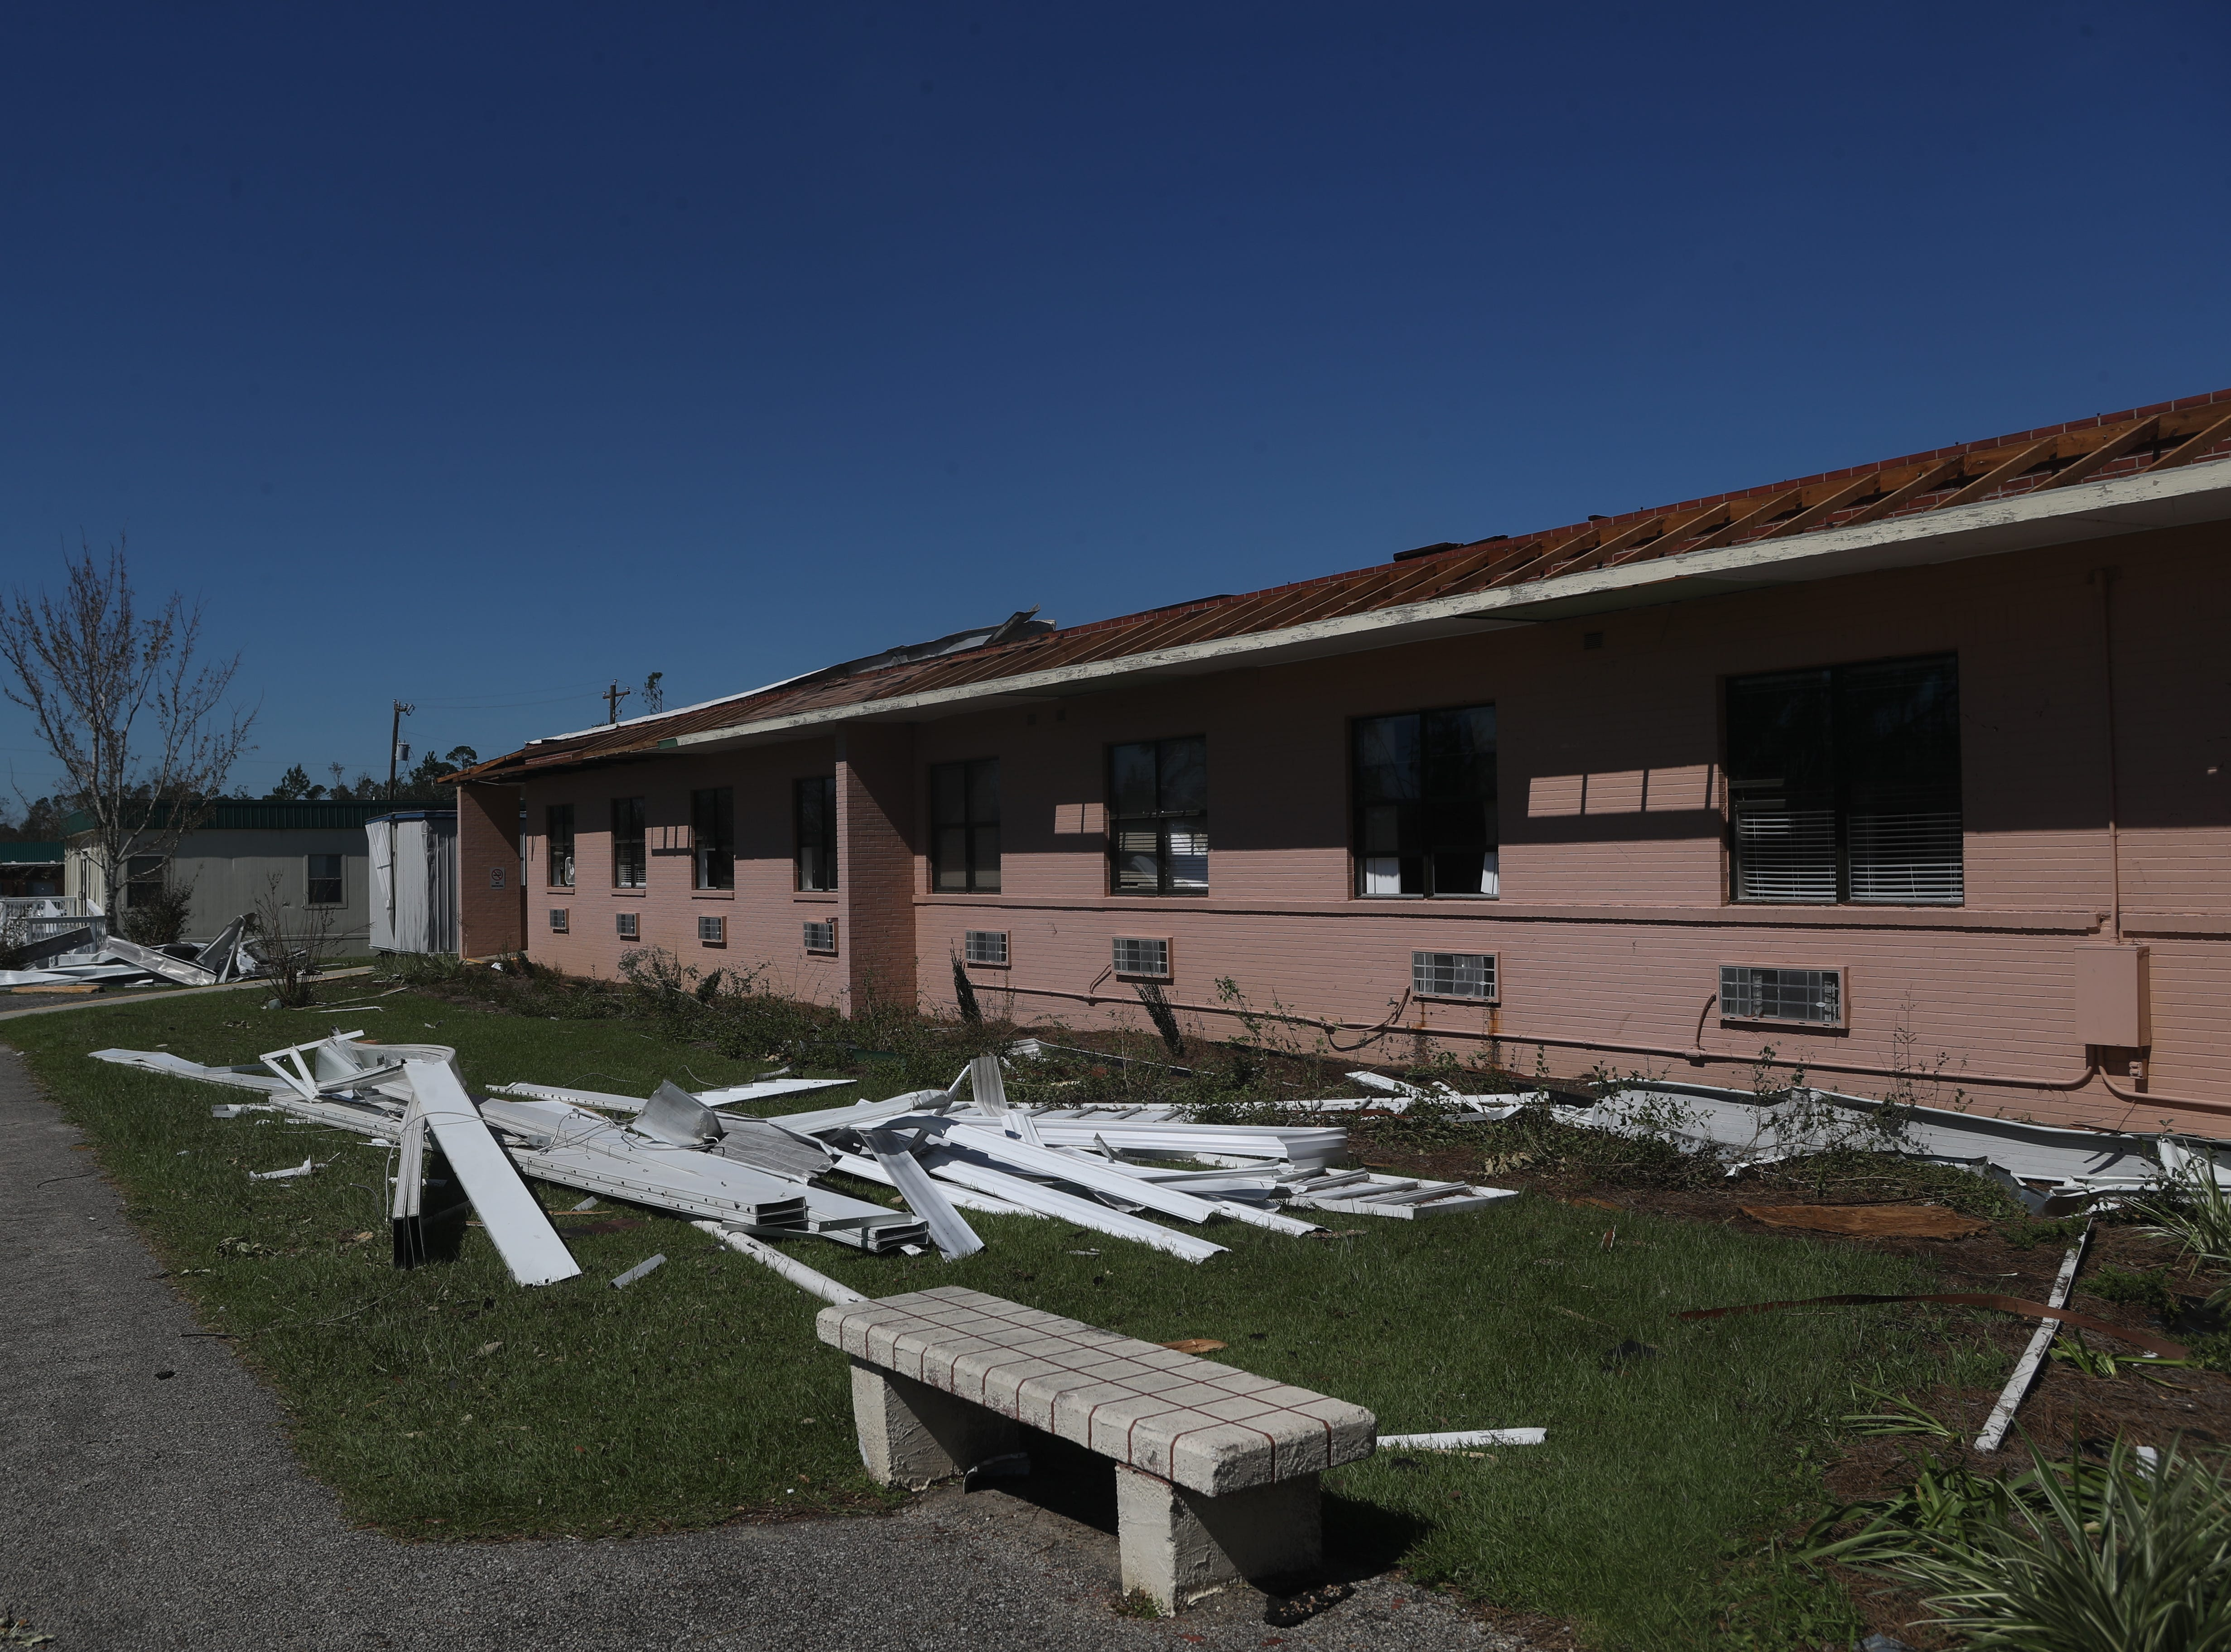 The Calhoun Liberty Hospital in Blountstown, Fla. is heavily damaged in the aftermath of Hurricane Michael Friday, Oct. 12, 2018.